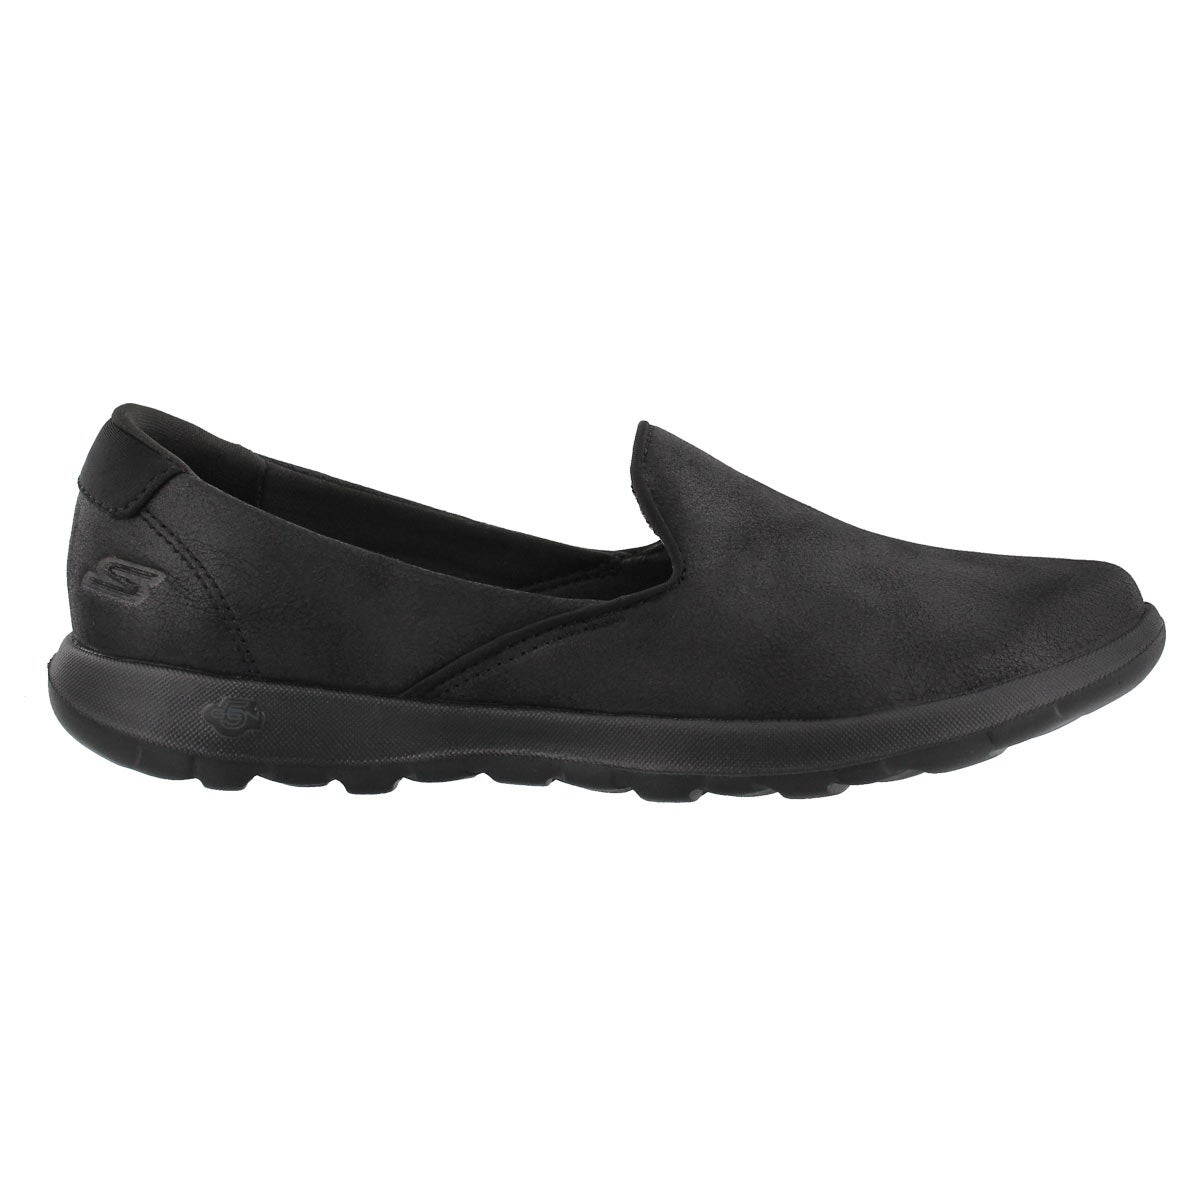 Lds GOWalk Lite Queenly bk slip on shoe